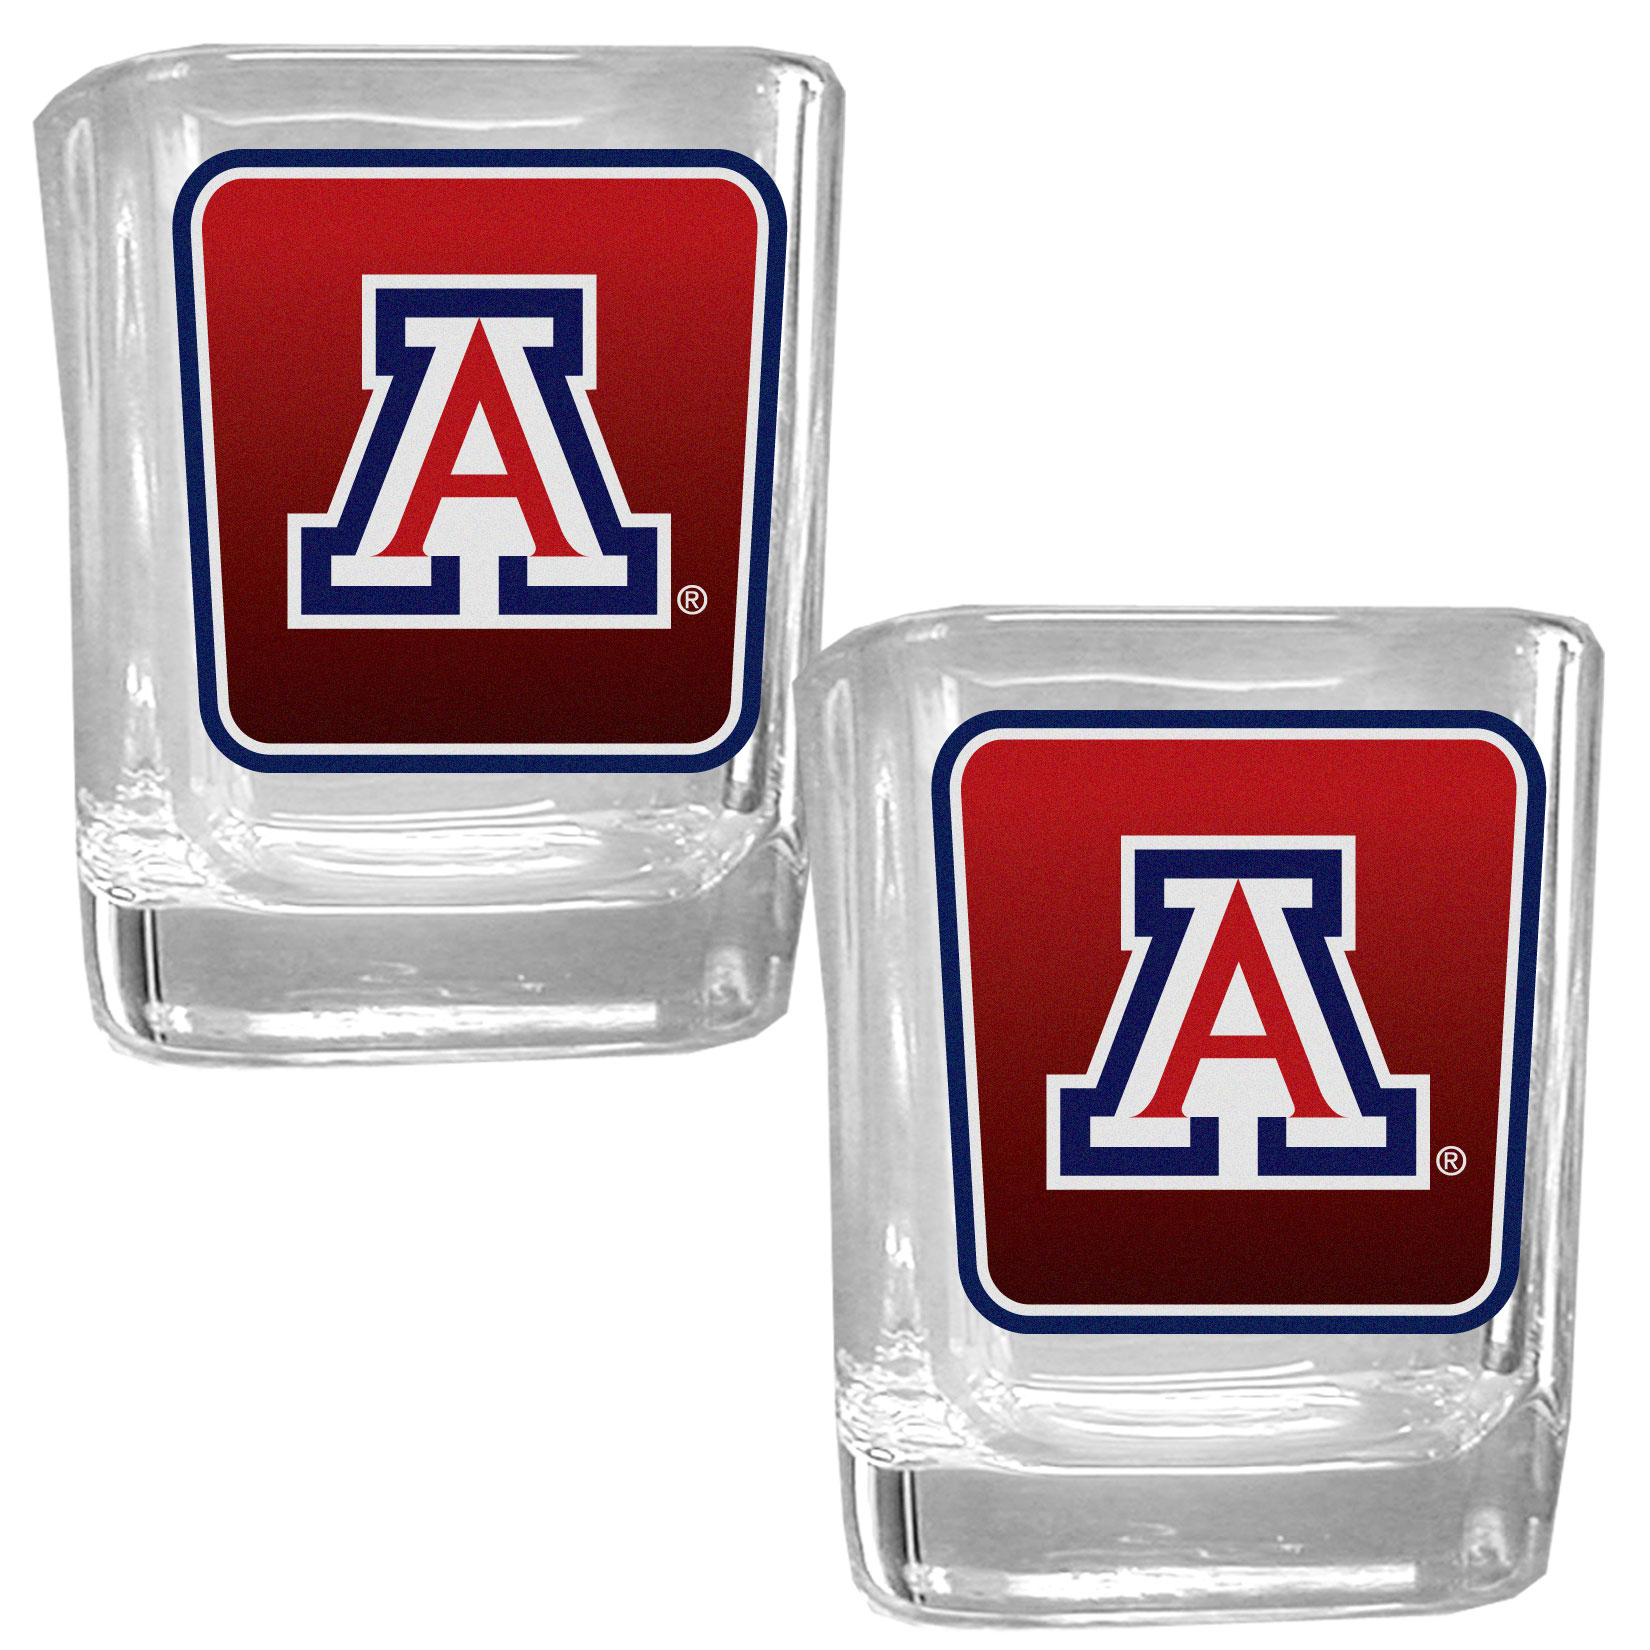 Arizona Wildcats Square Glass Shot Glass Set - Our glass shot glasses are perfect for collectors or any game day event. The 2 ounce glasses feature bright, vidid digital Arizona Wildcats graphics. Comes in a set of 2.